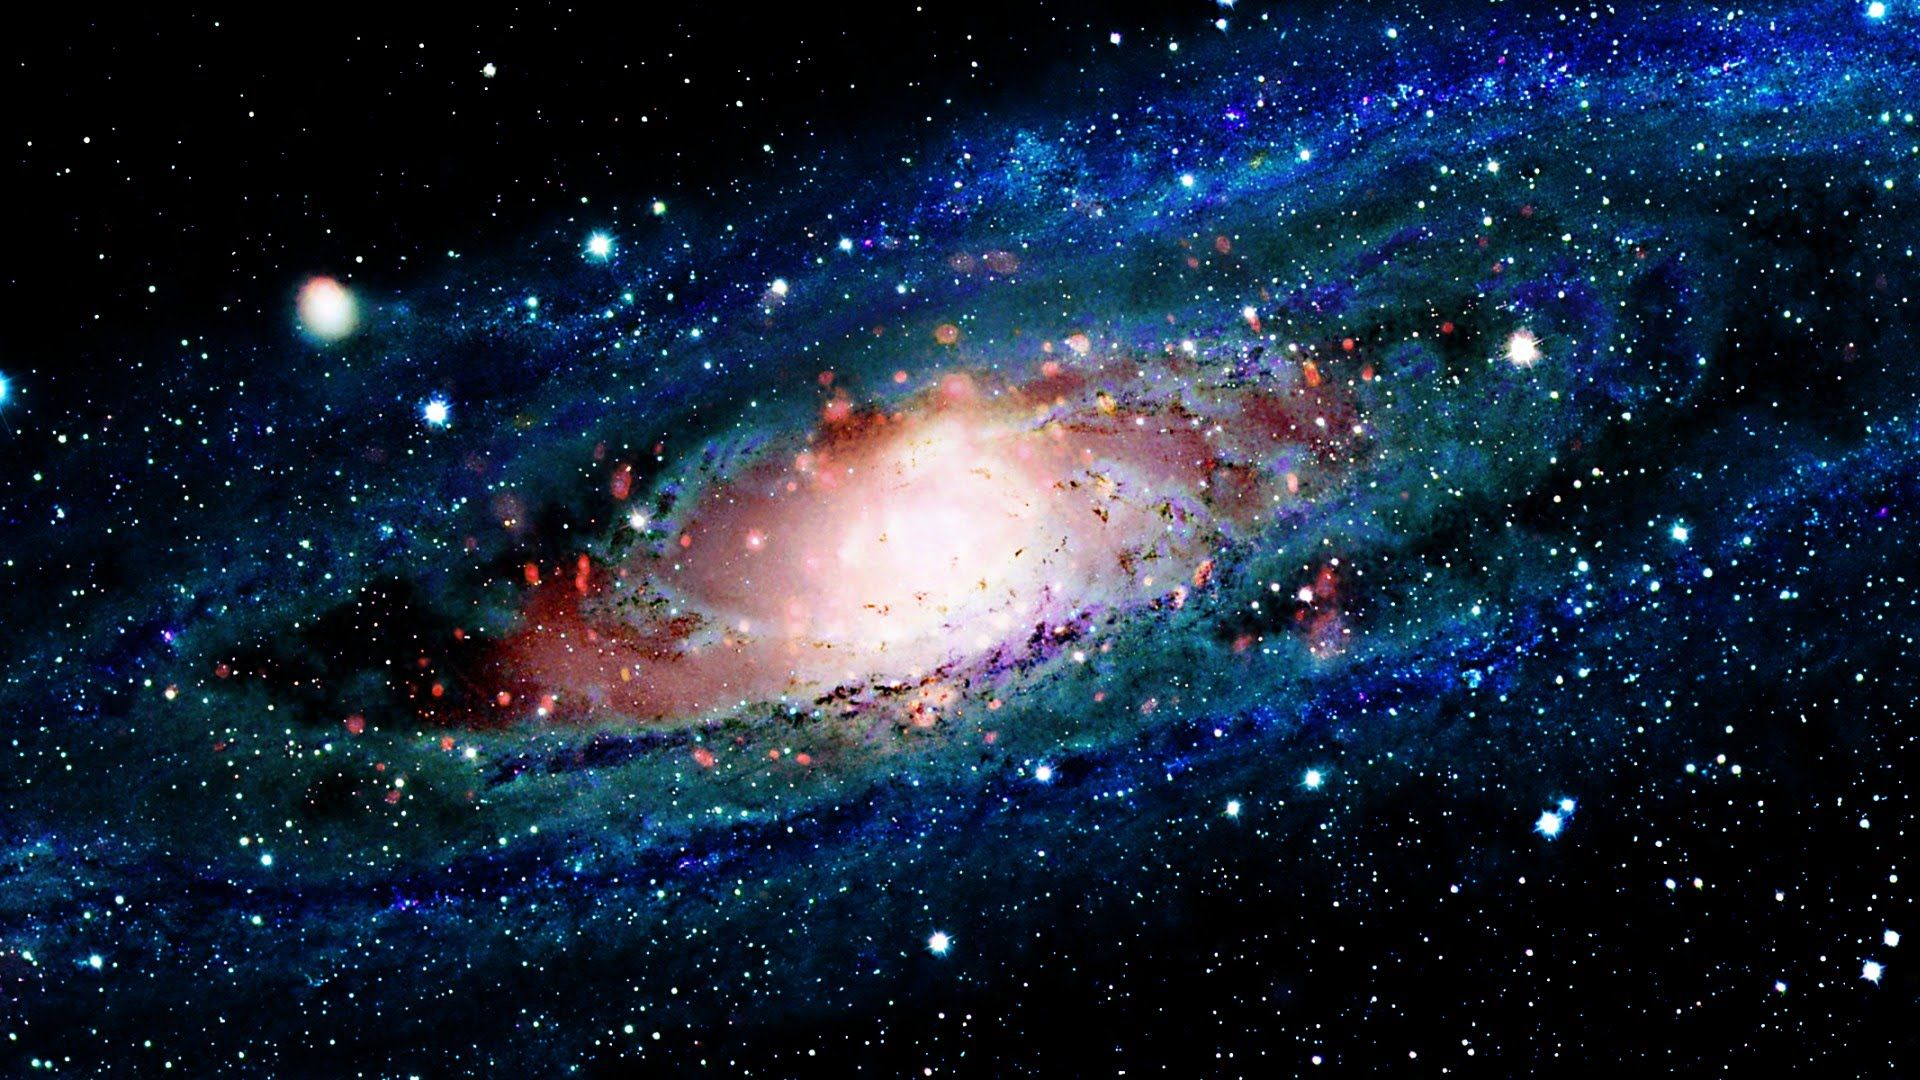 Pin By Emilia On Interesting Things At Least To Me Hd Galaxy Wallpaper Galaxy Wallpaper Andromeda Galaxy